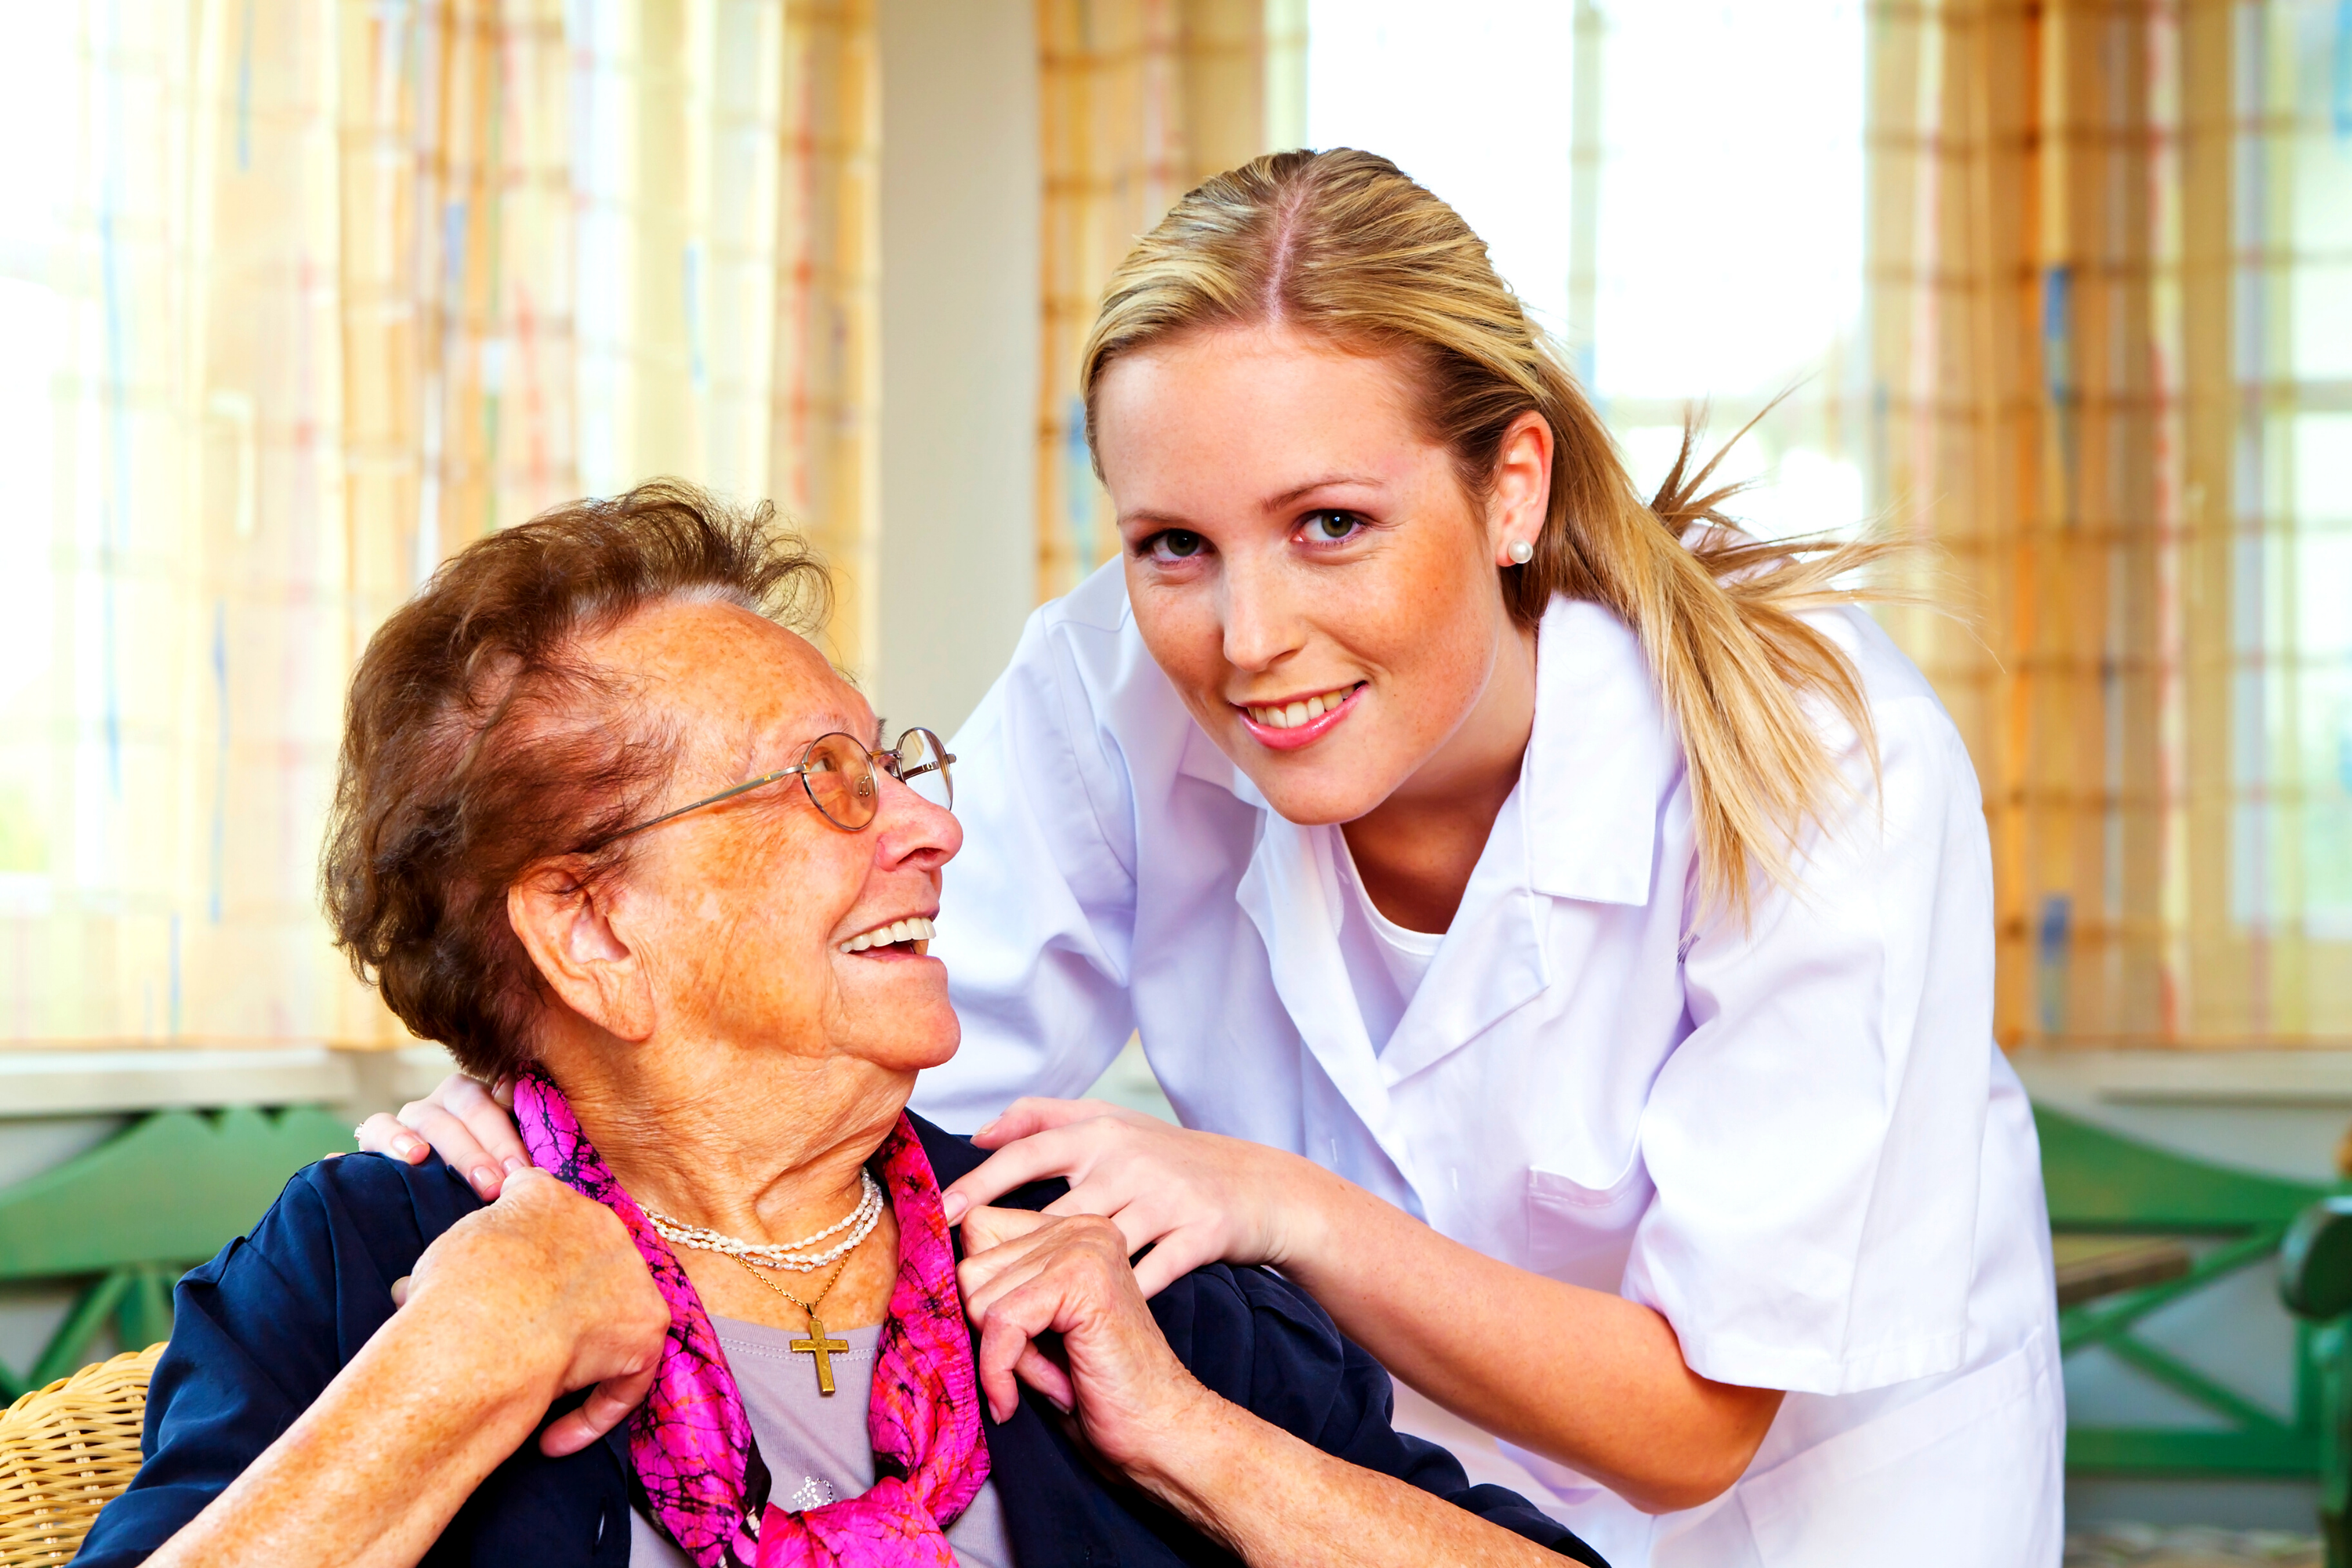 A female care worker with an elderly lady smiling up at her